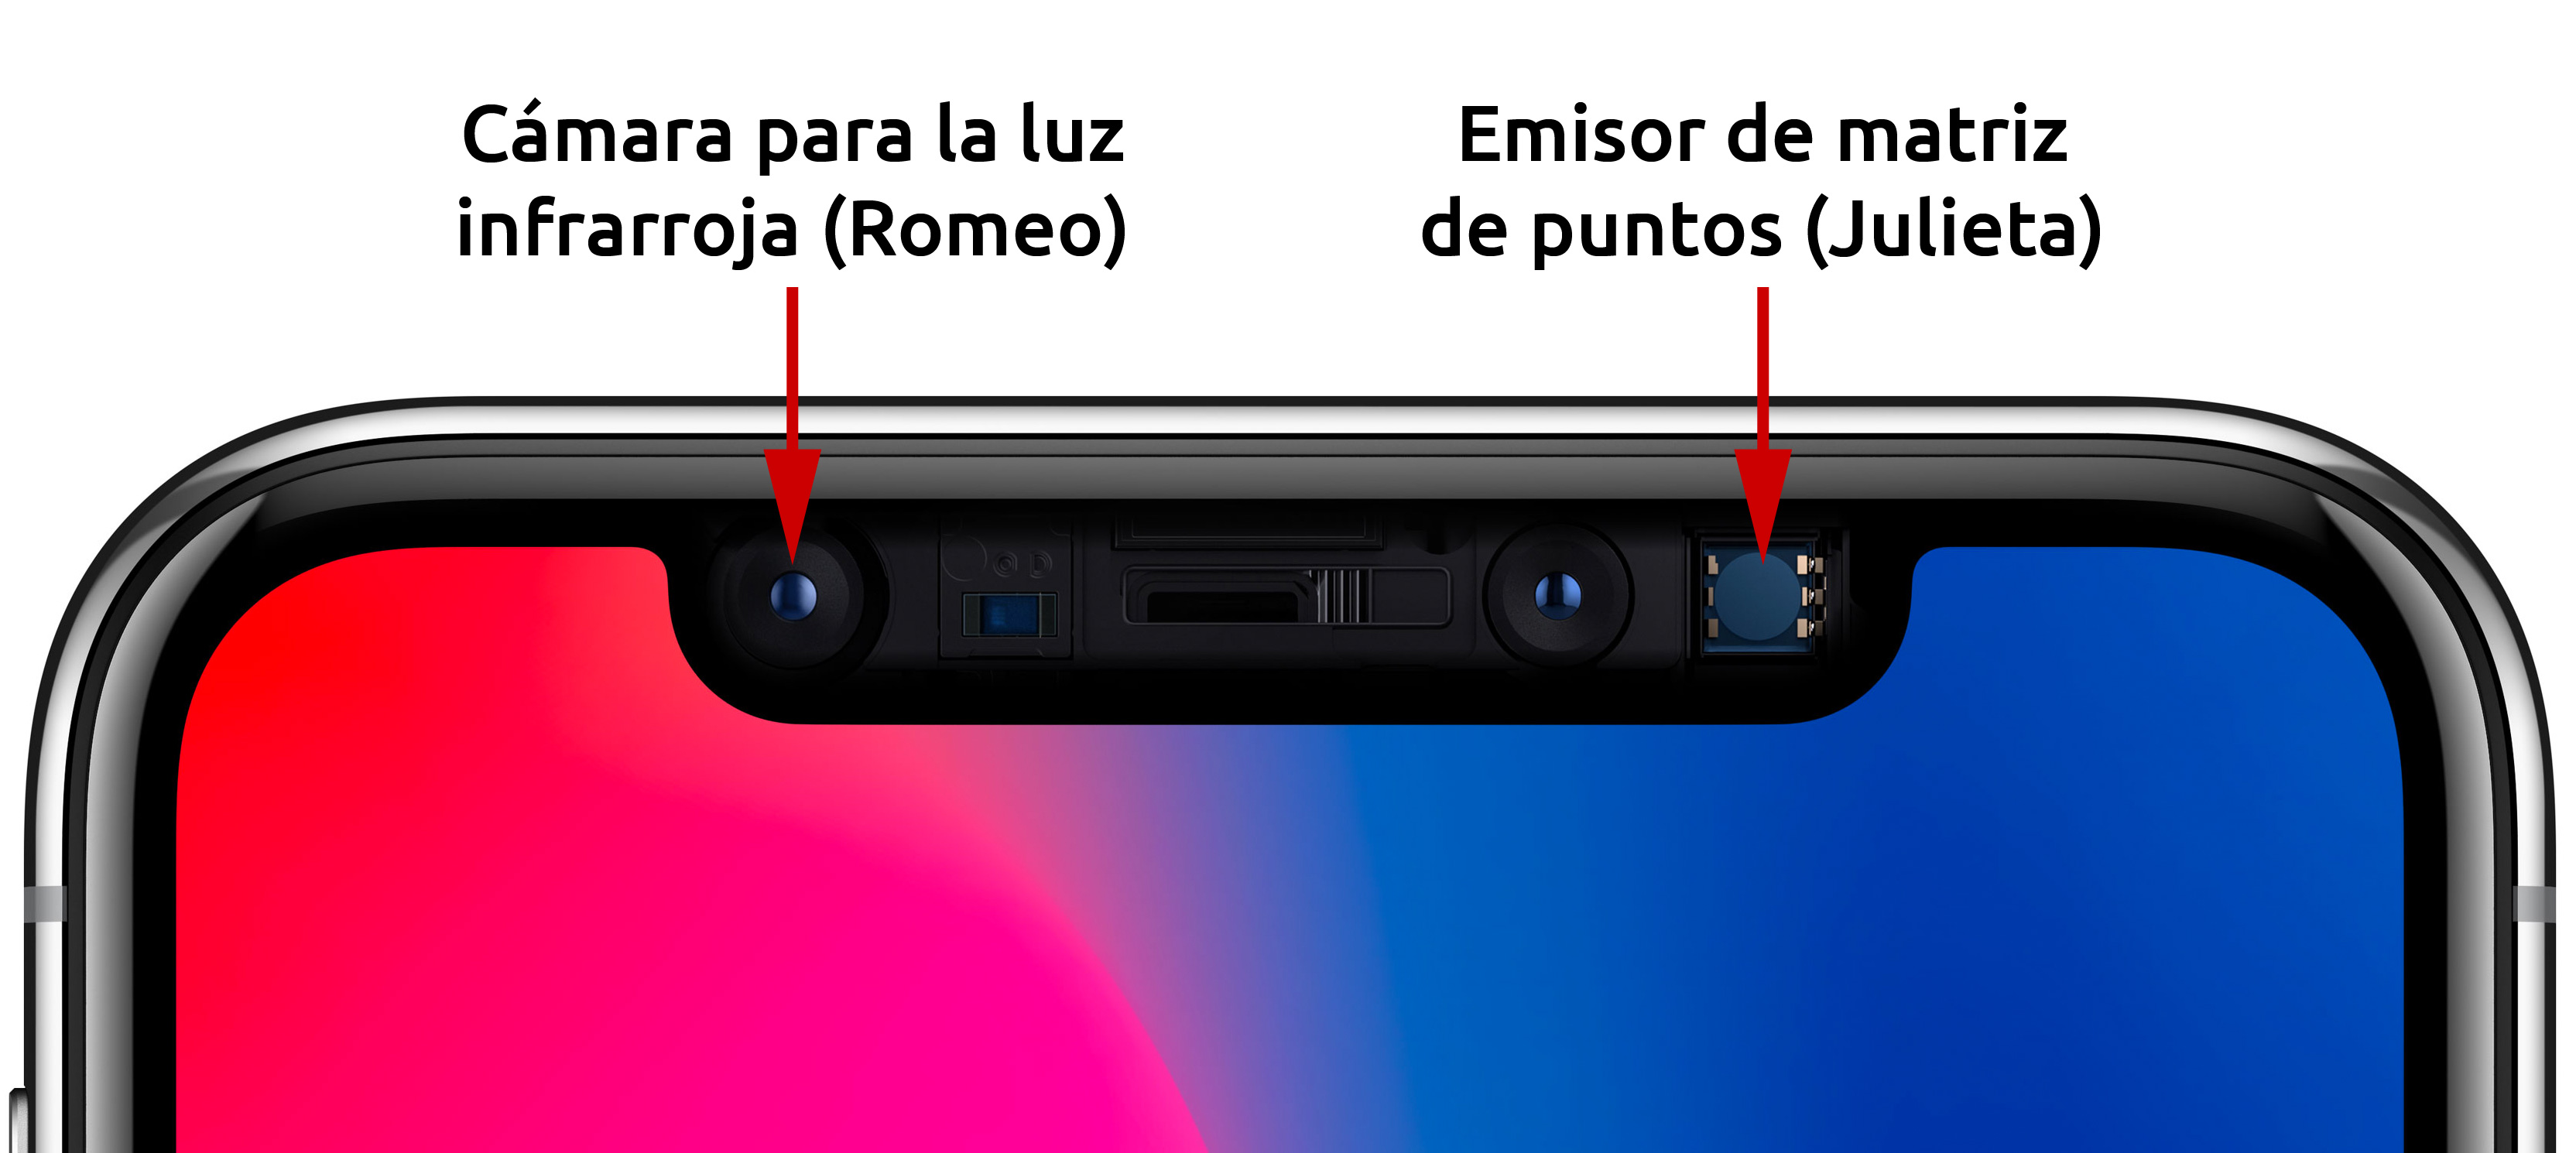 Romeo y Julieta en el iPhone X